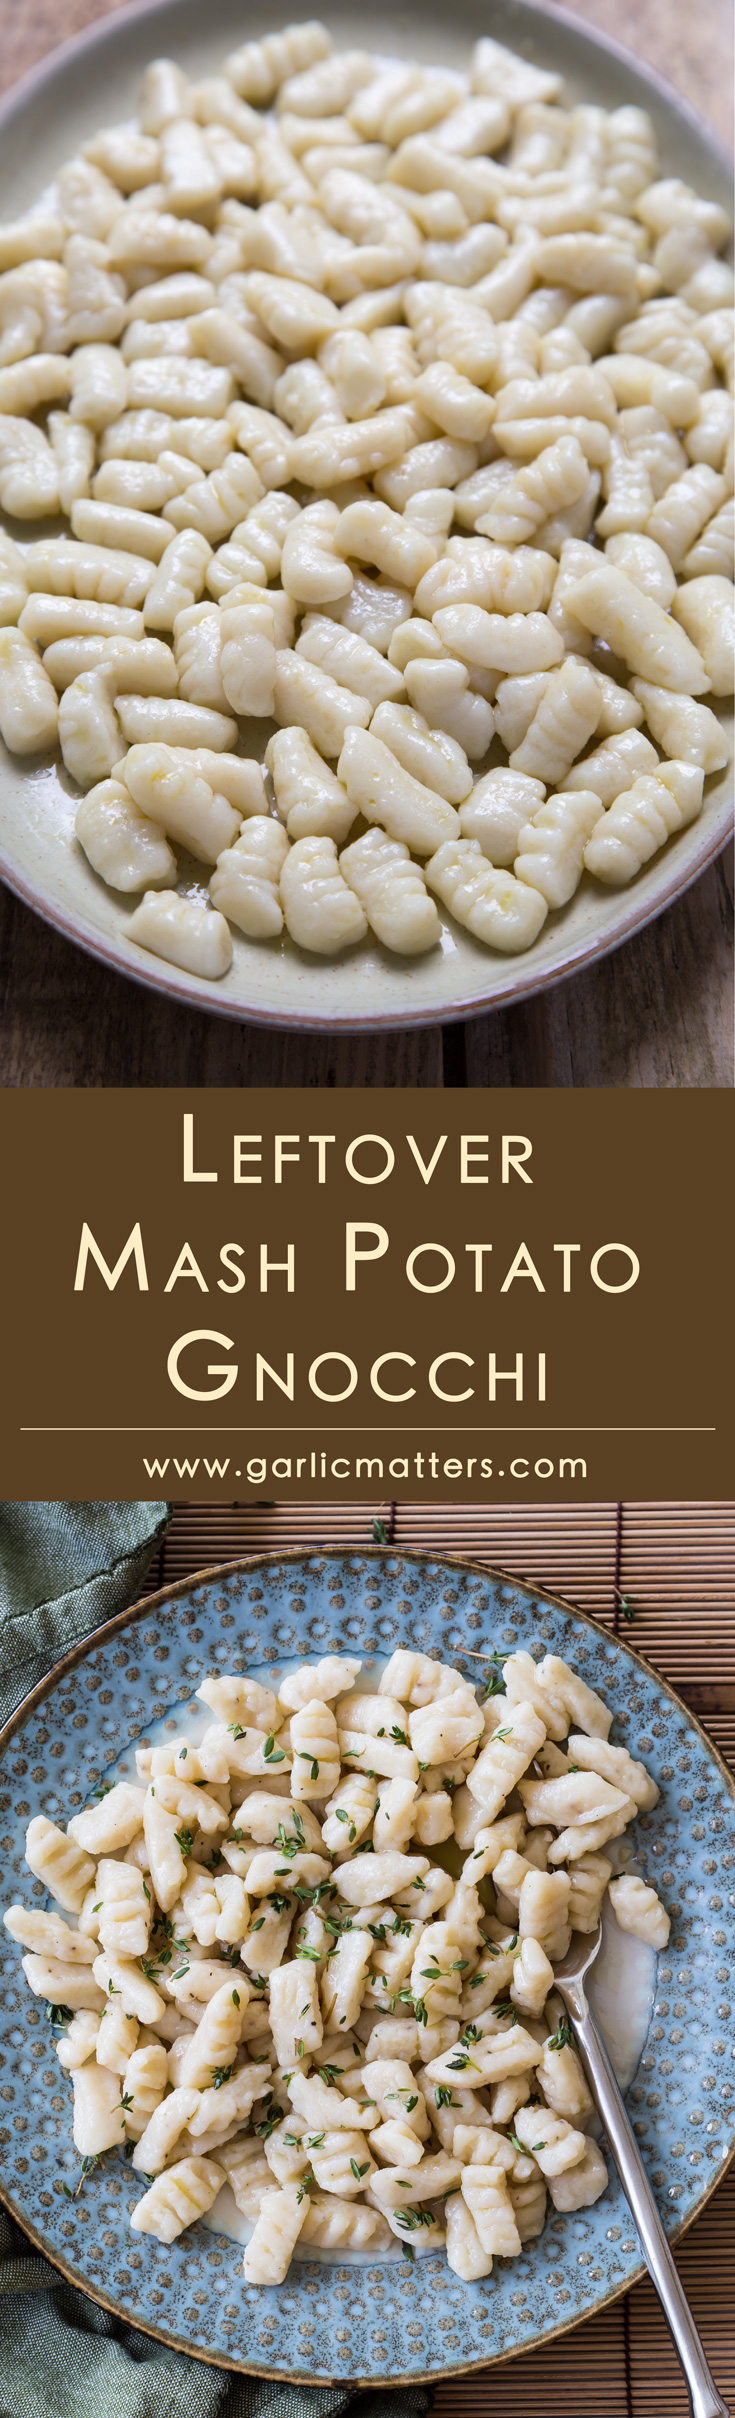 Foolproof leftover mash potato gnocchi recipe - simple, easy, tasty & homemade. Great alternative to pasta or potatoes for both comfort style dinner or lunch. Perfect for vegetable ragu, meaty stew or goulash, fried bacon, caramelised onions or garlic herb butter.